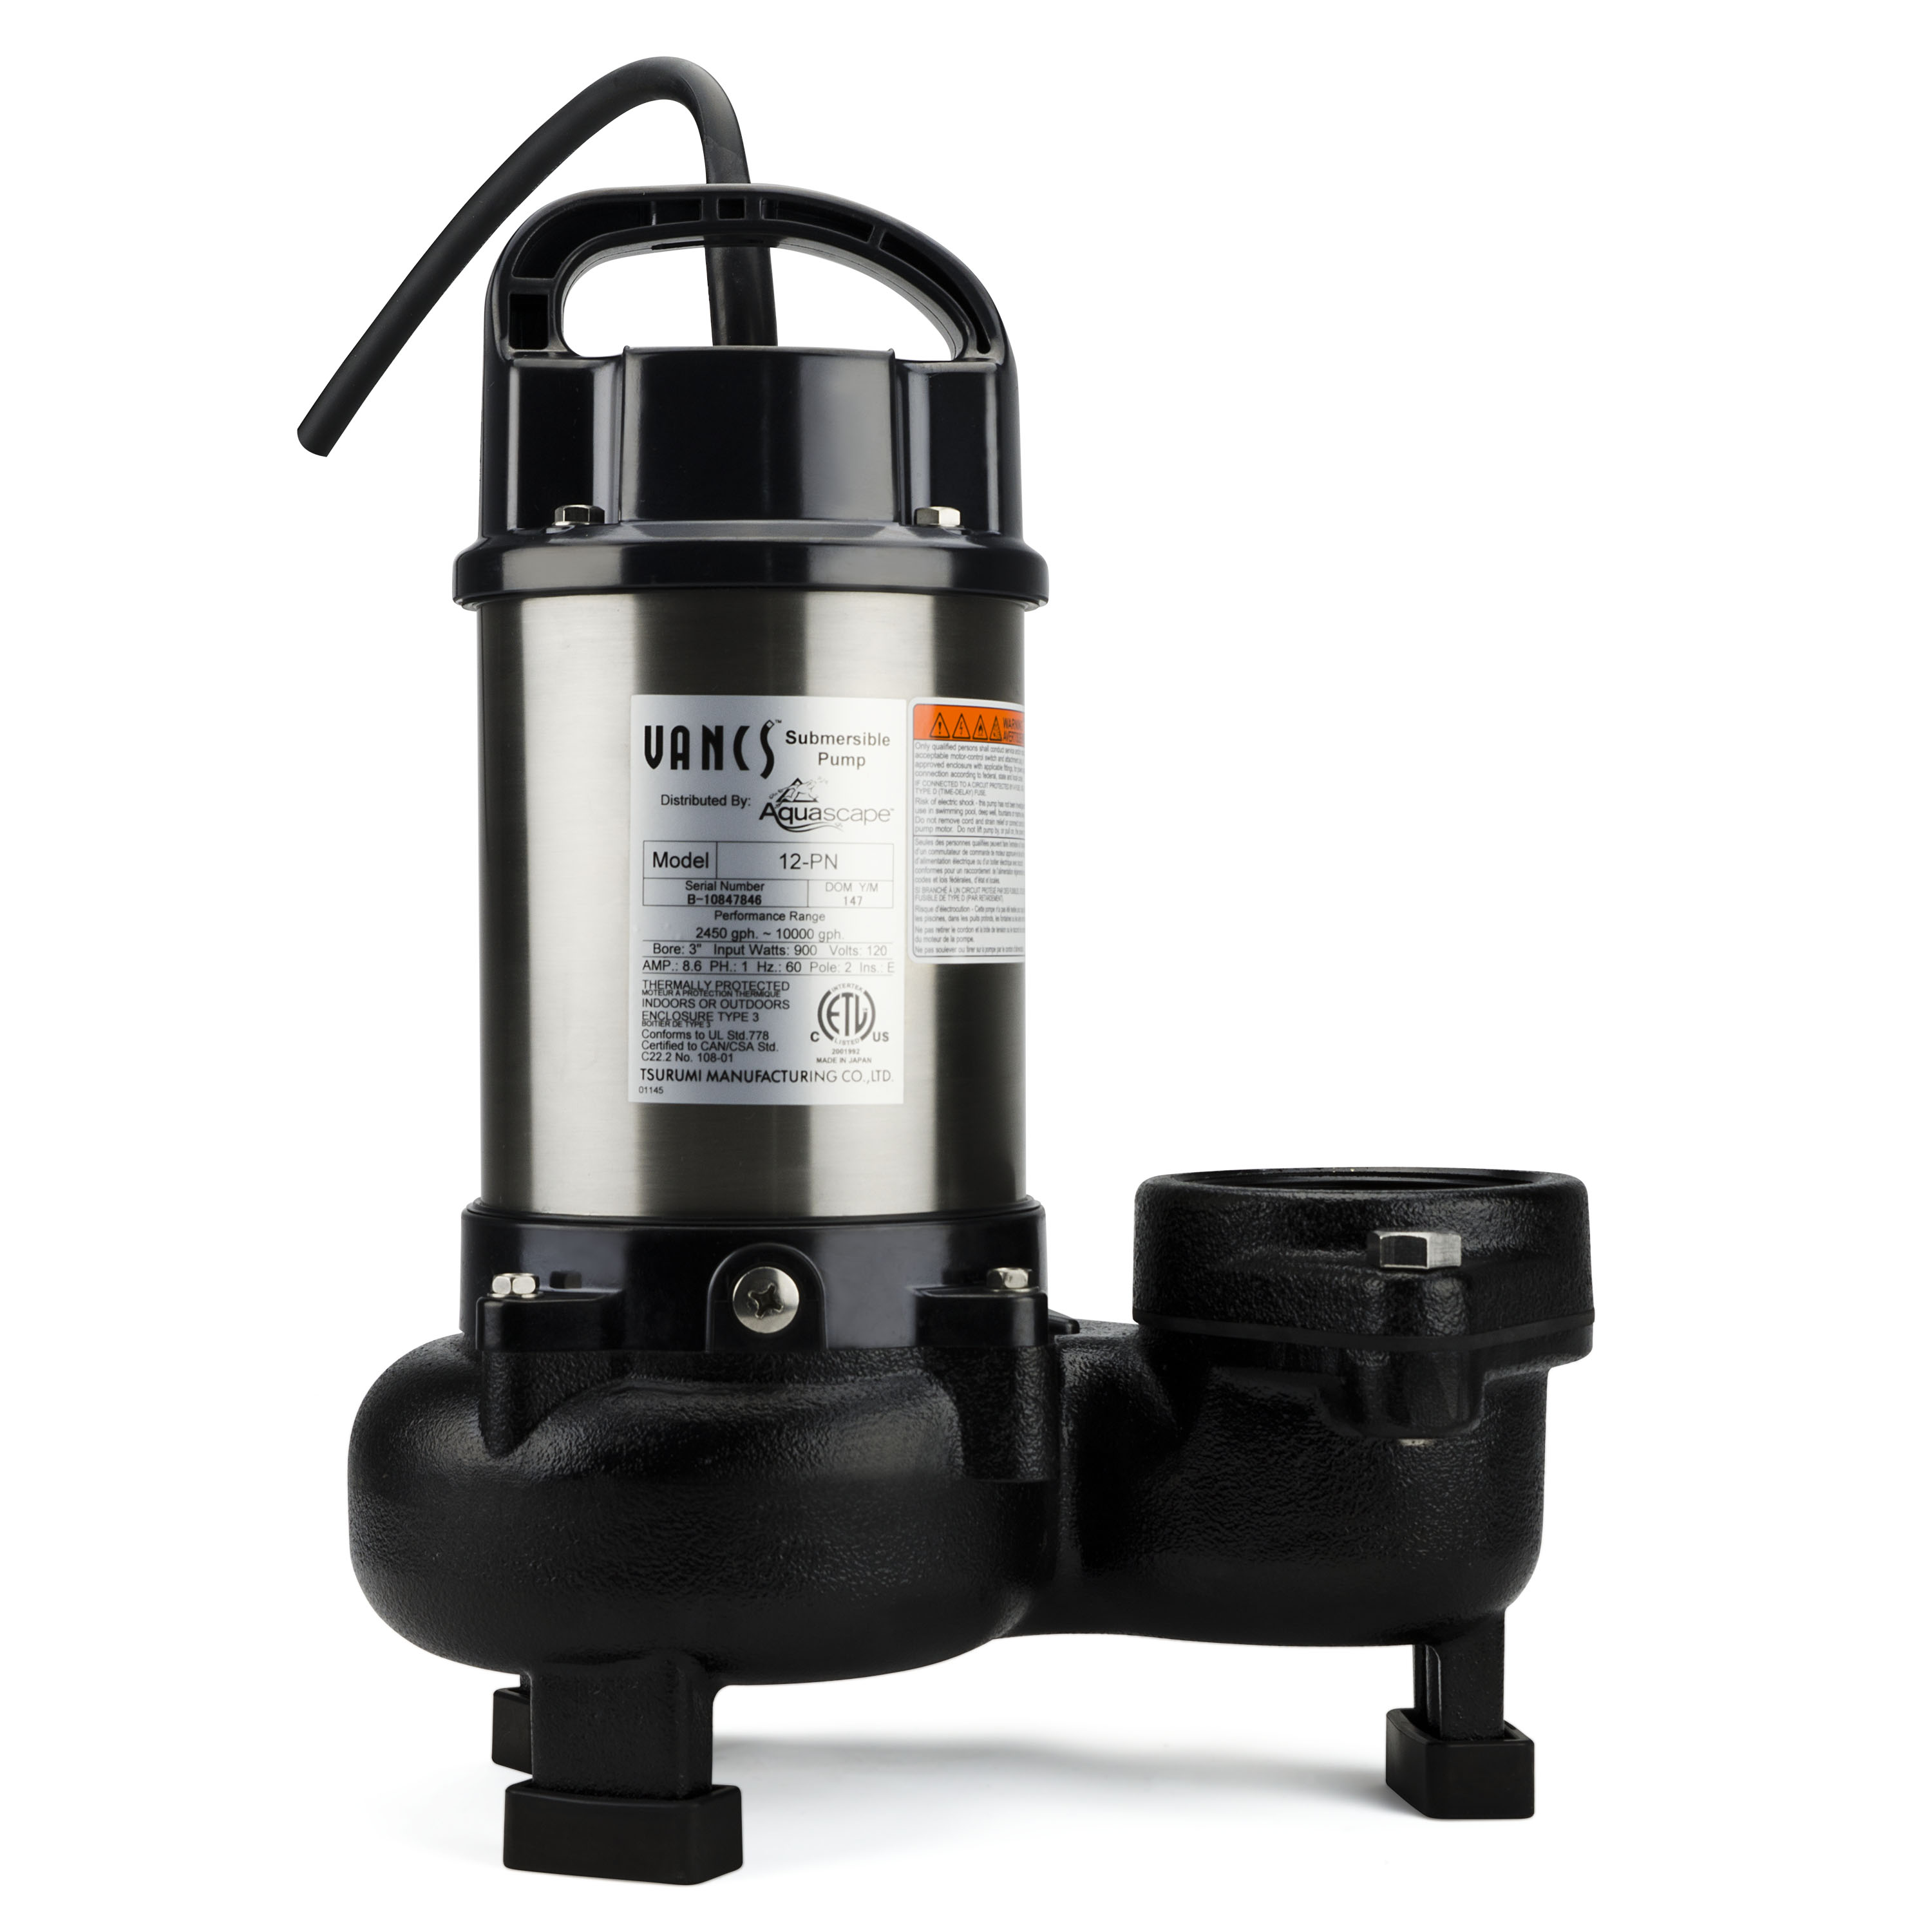 Aquascape Pn Series Solids Handling Pond Pumps Upright